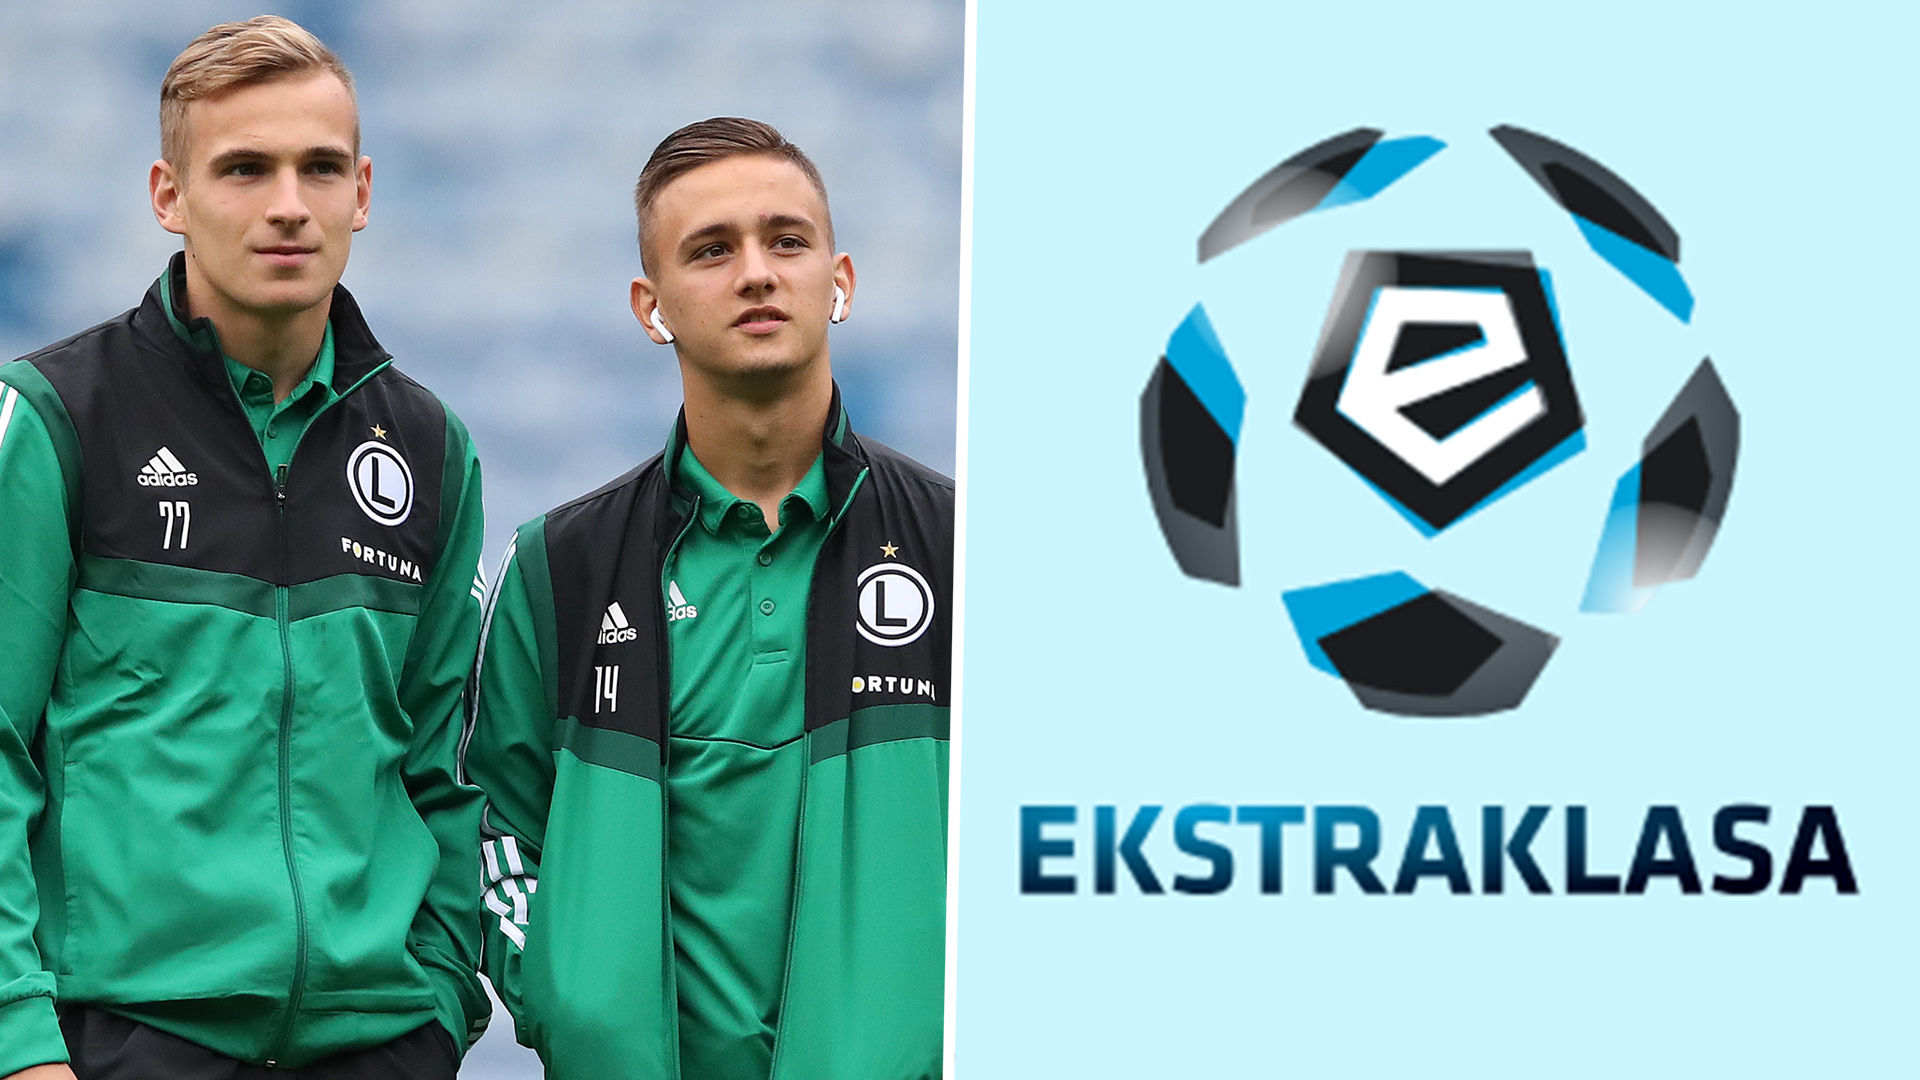 Polish Ekstraklasa set to welcome back fans in June after league returns from coronavirus pandemic